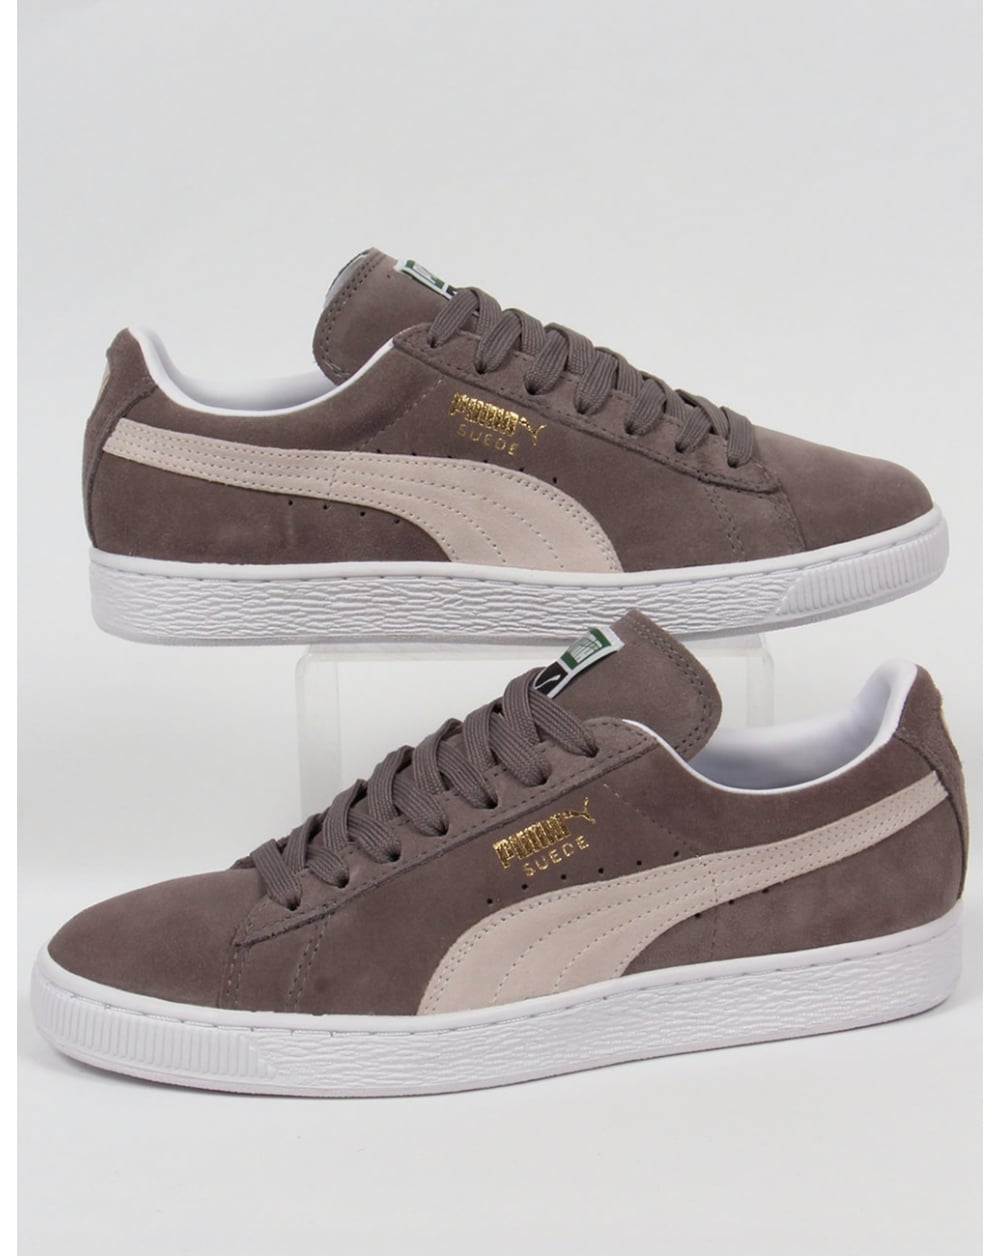 puma suede classic trainers steeple grey white shoes. Black Bedroom Furniture Sets. Home Design Ideas